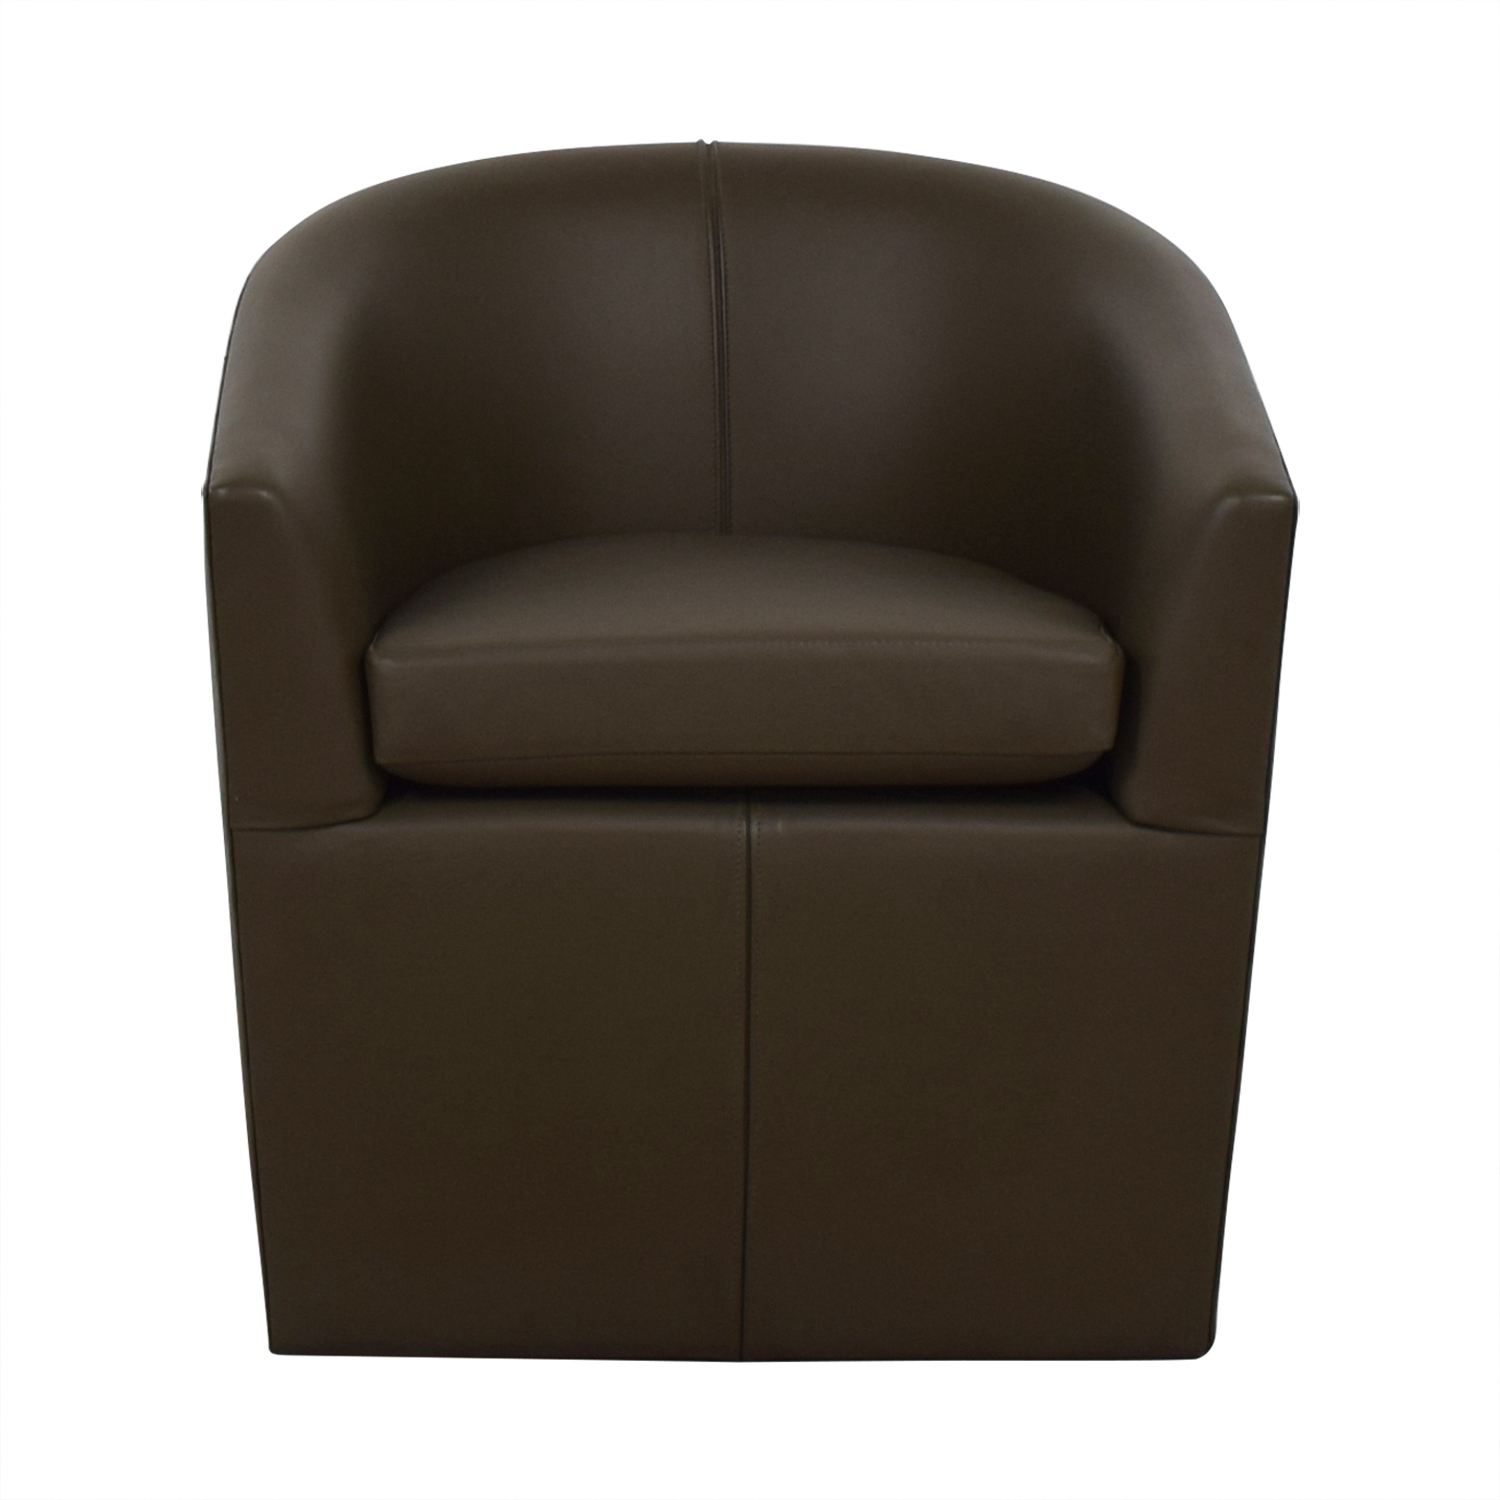 Furniture Masters Furniture Masters Club Accent Chair on sale